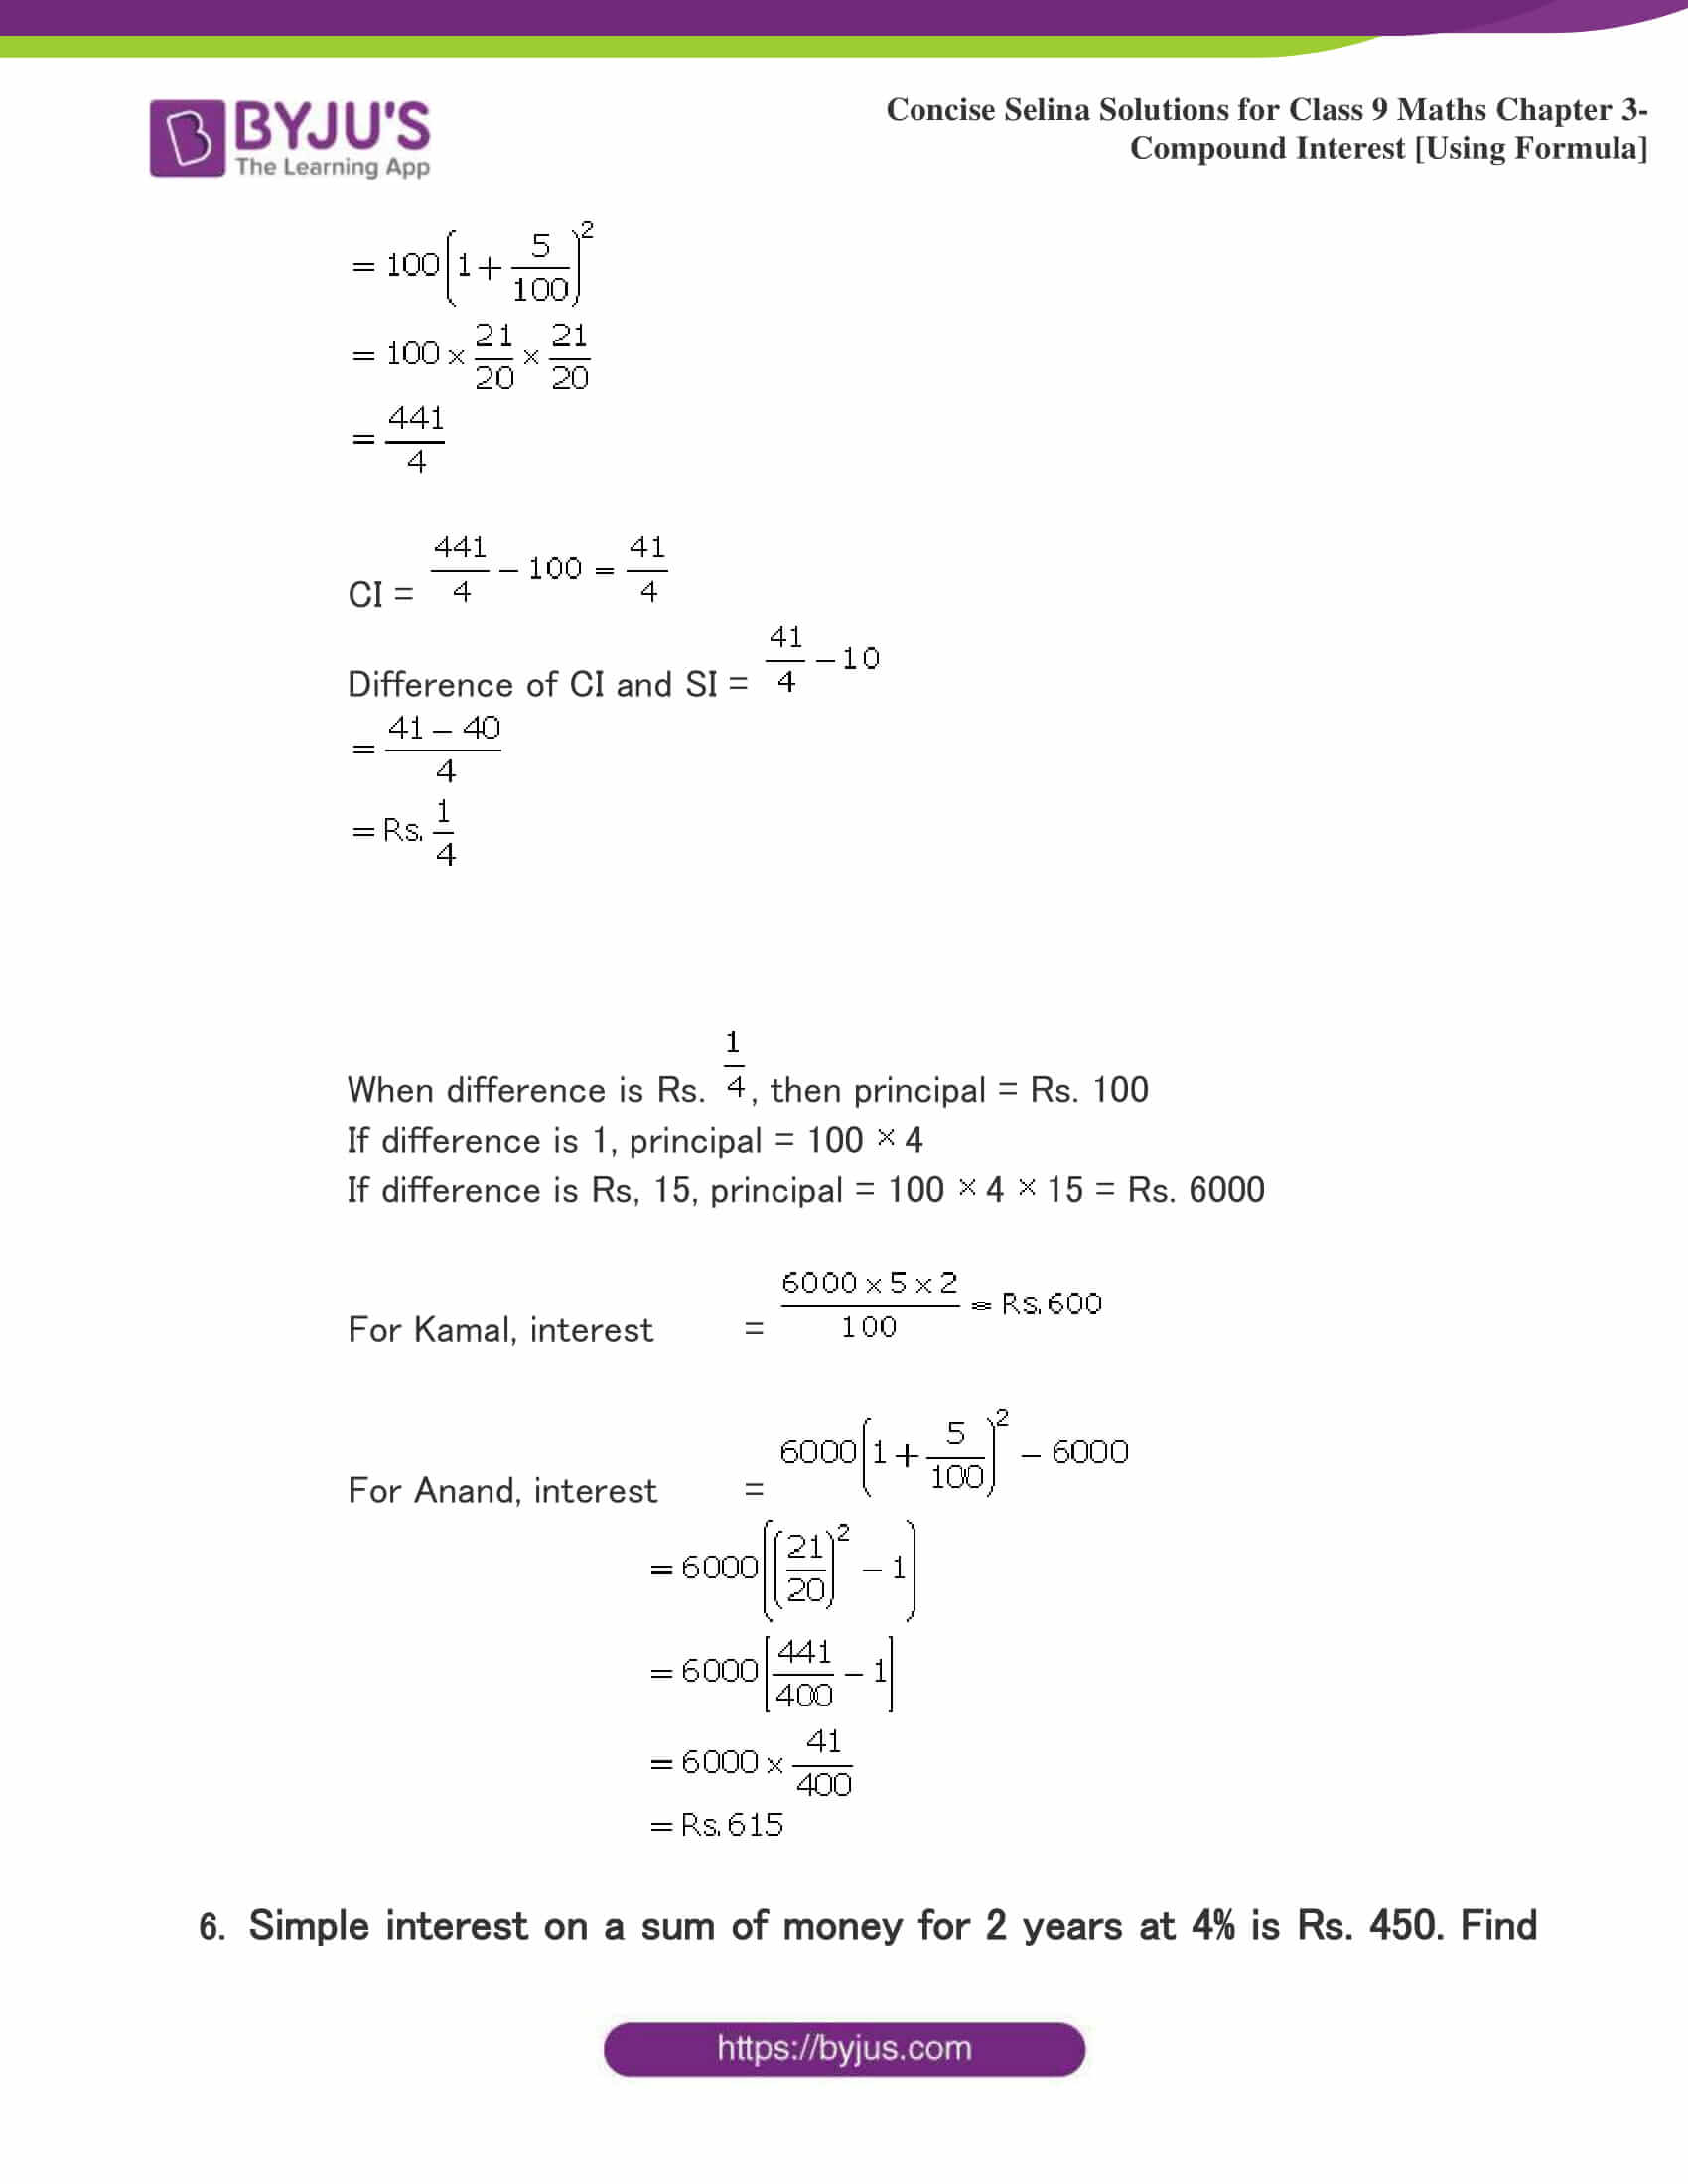 Selina Solutions Class 9 Maths Chapter 3 Compound Interest Using Formula part 17